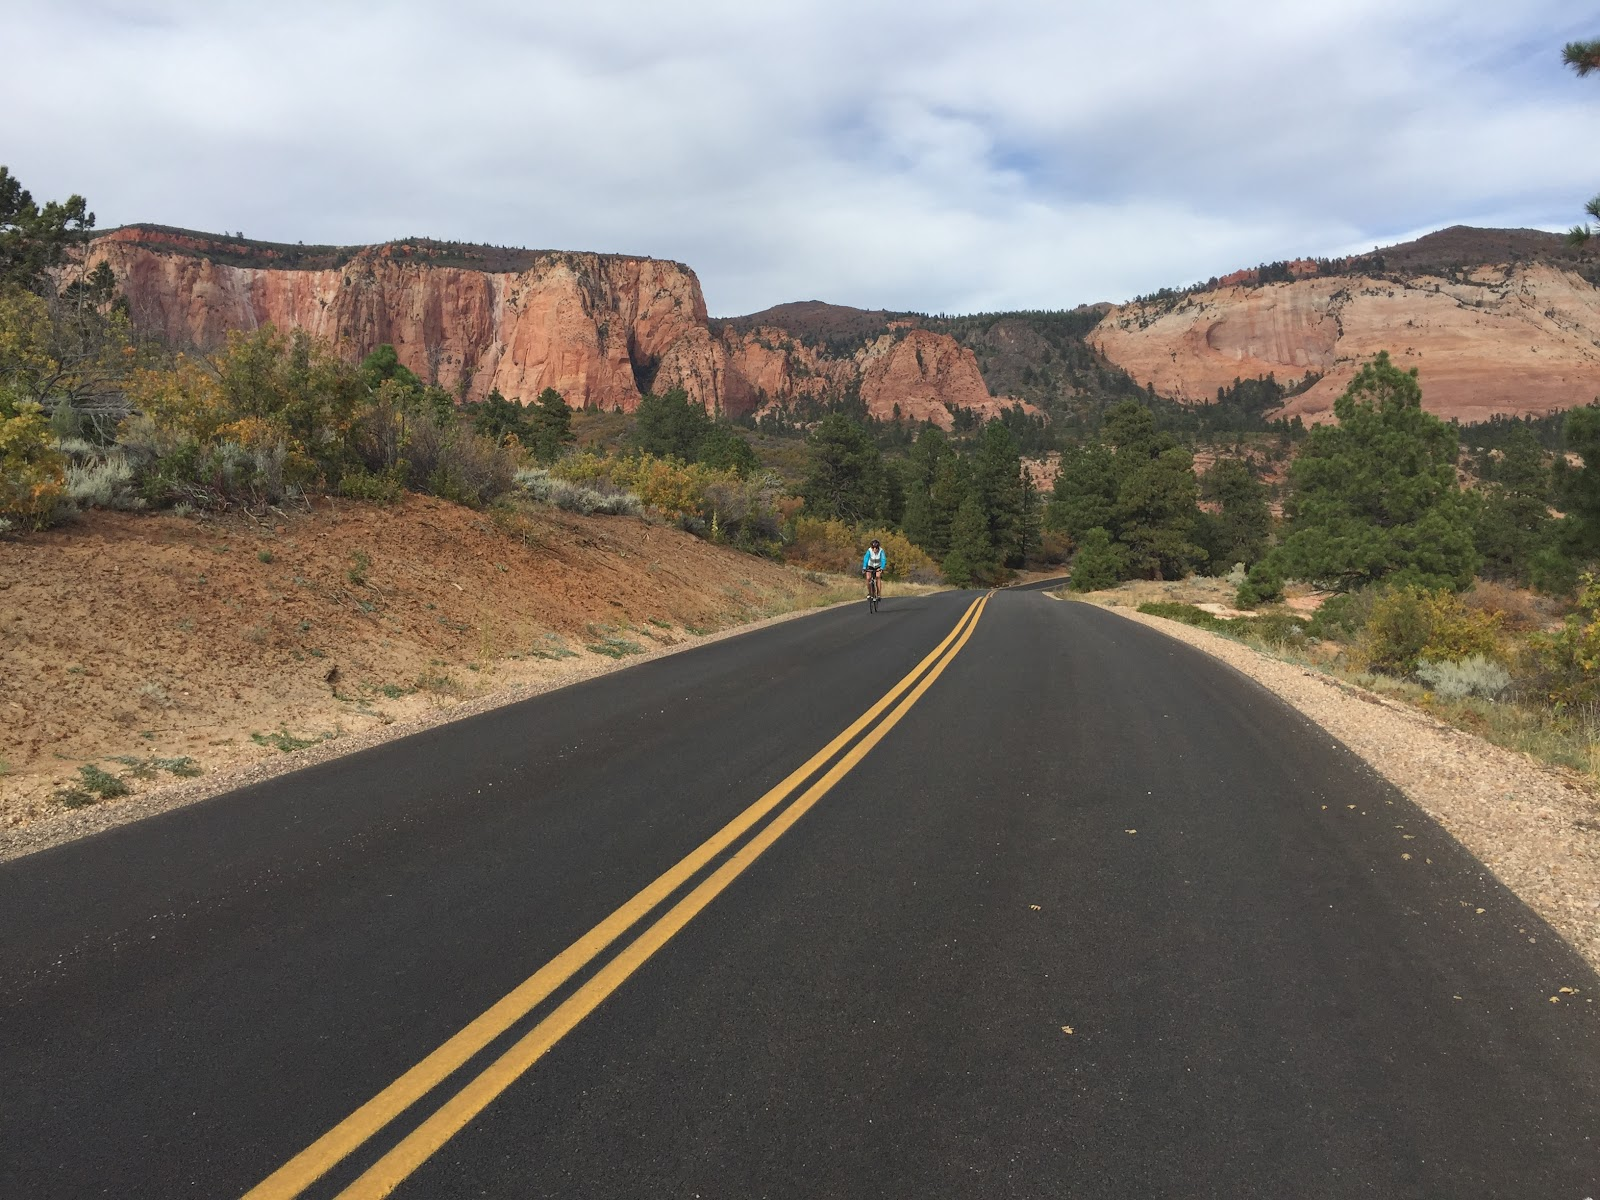 Bicycling Kolob Terrace - cyclist on road with mountains behind